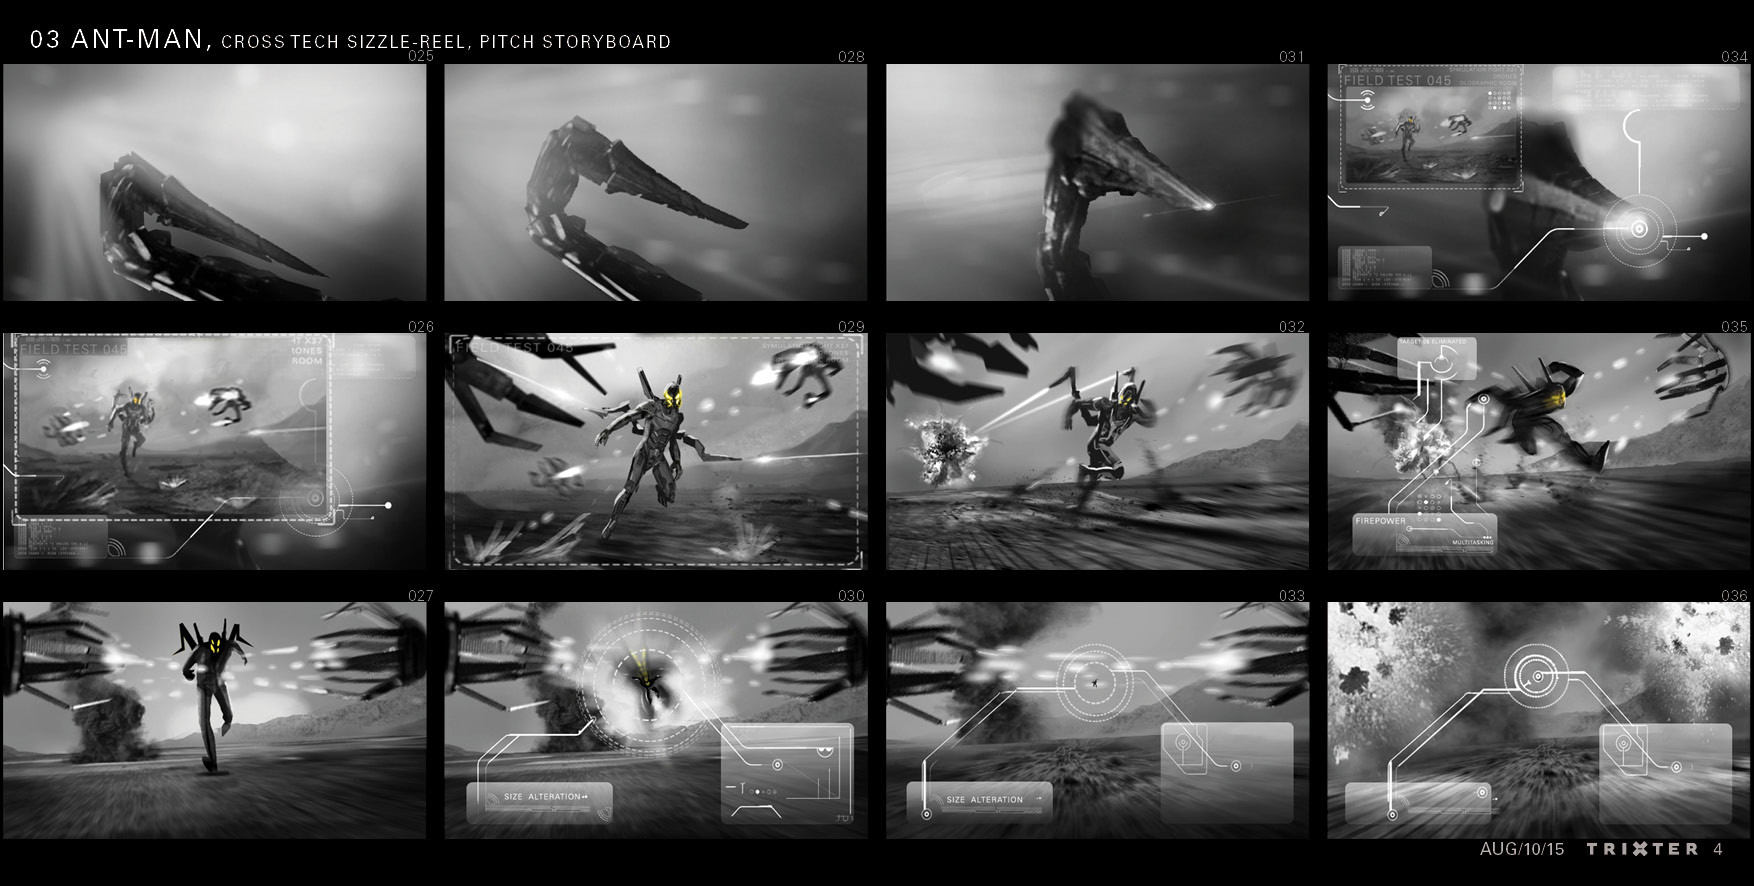 Paolo giandoso ant man cross tech sizzle reel pitch stb page 04